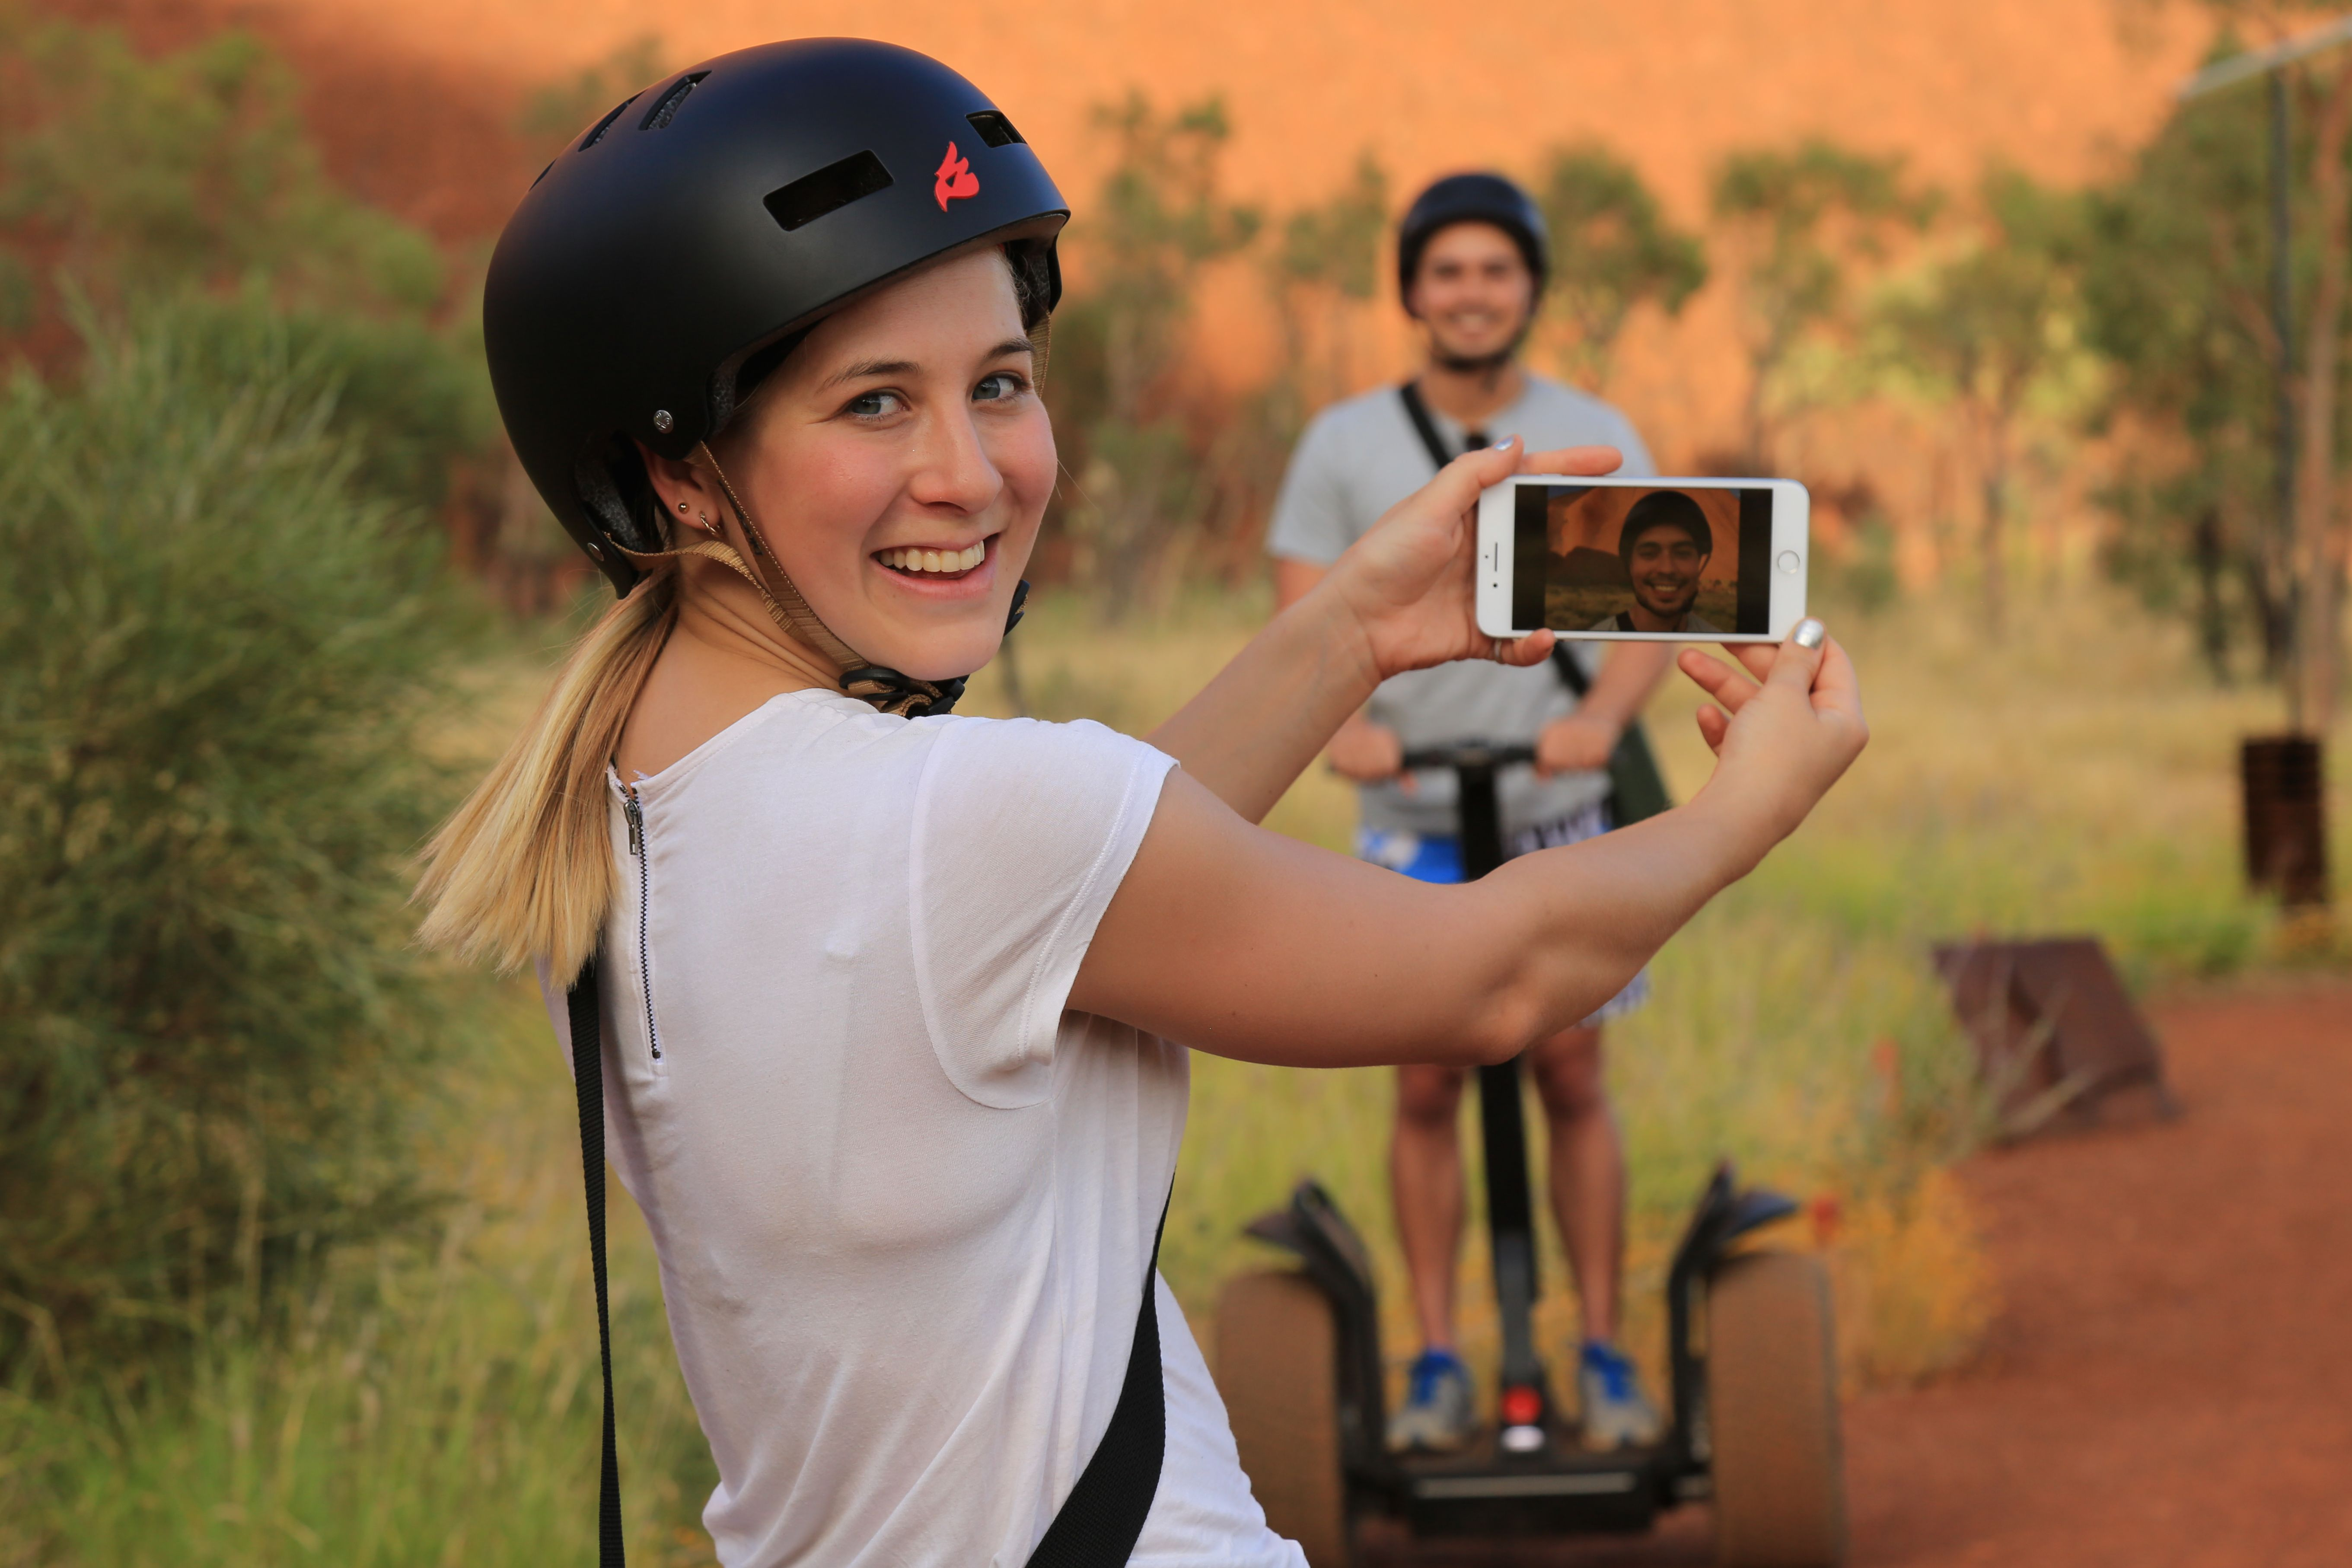 taking a photo on a segway